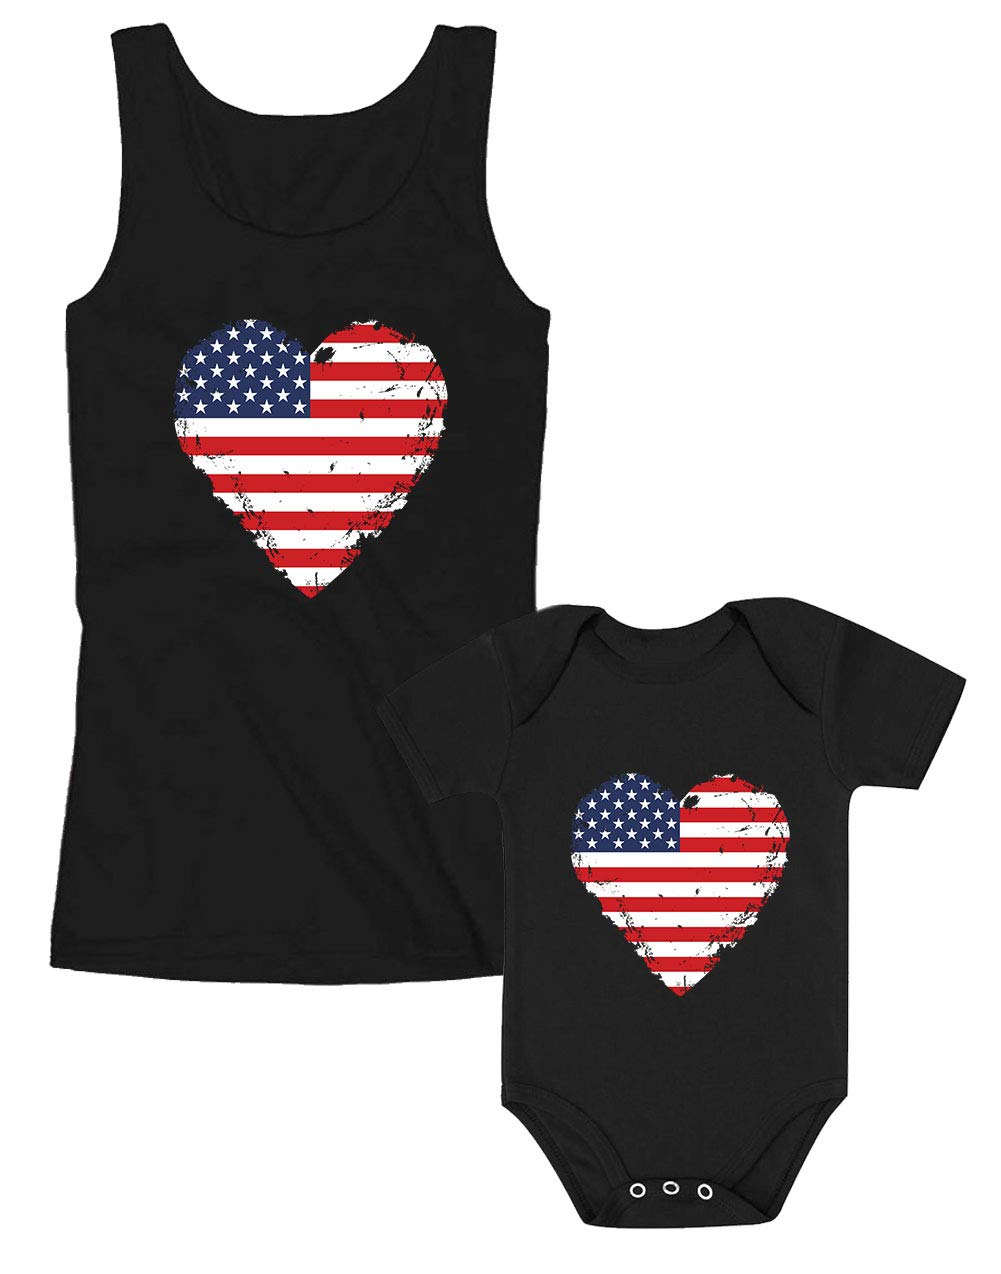 USA Heart Flag Patriotic Shirts Mother & Baby Matching Set 4th of July Outfit